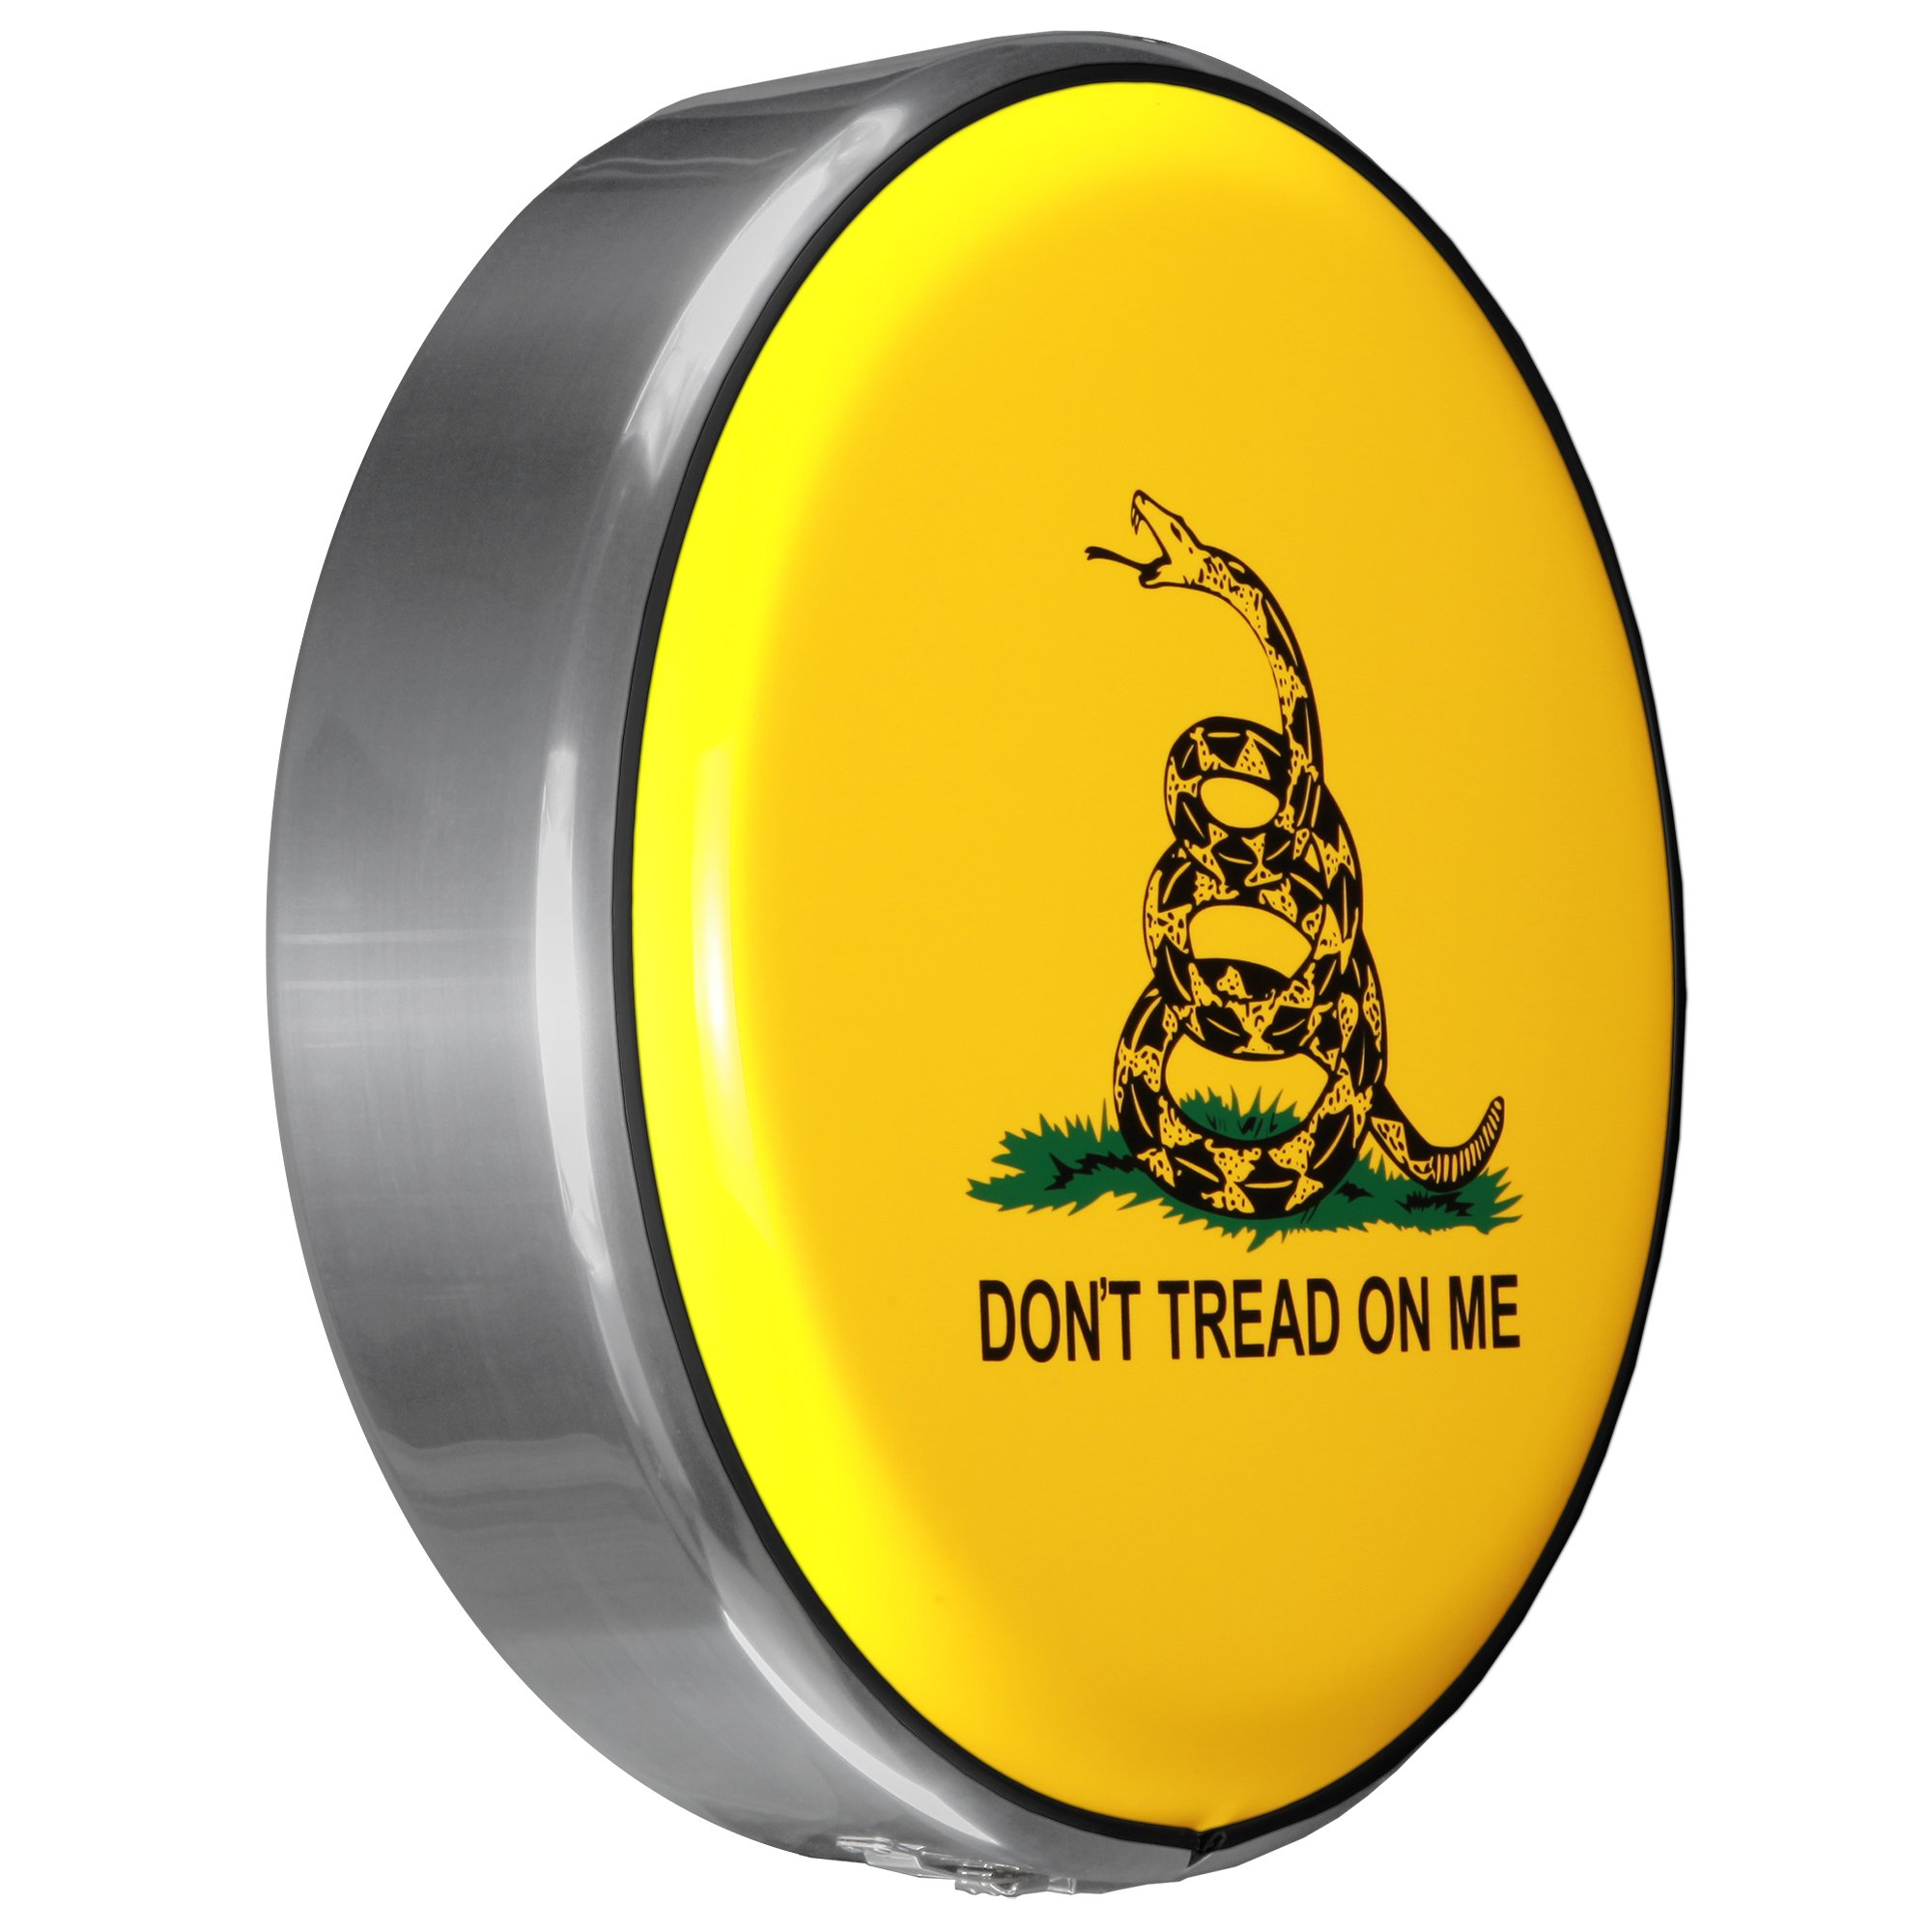 MasterSeries - Continental Tire Cover Kit (225/75R16 ) - (Molded Plastic Face & Polished Stainless Ring) - Don't Tread On Me Print (Gadsden Flag)